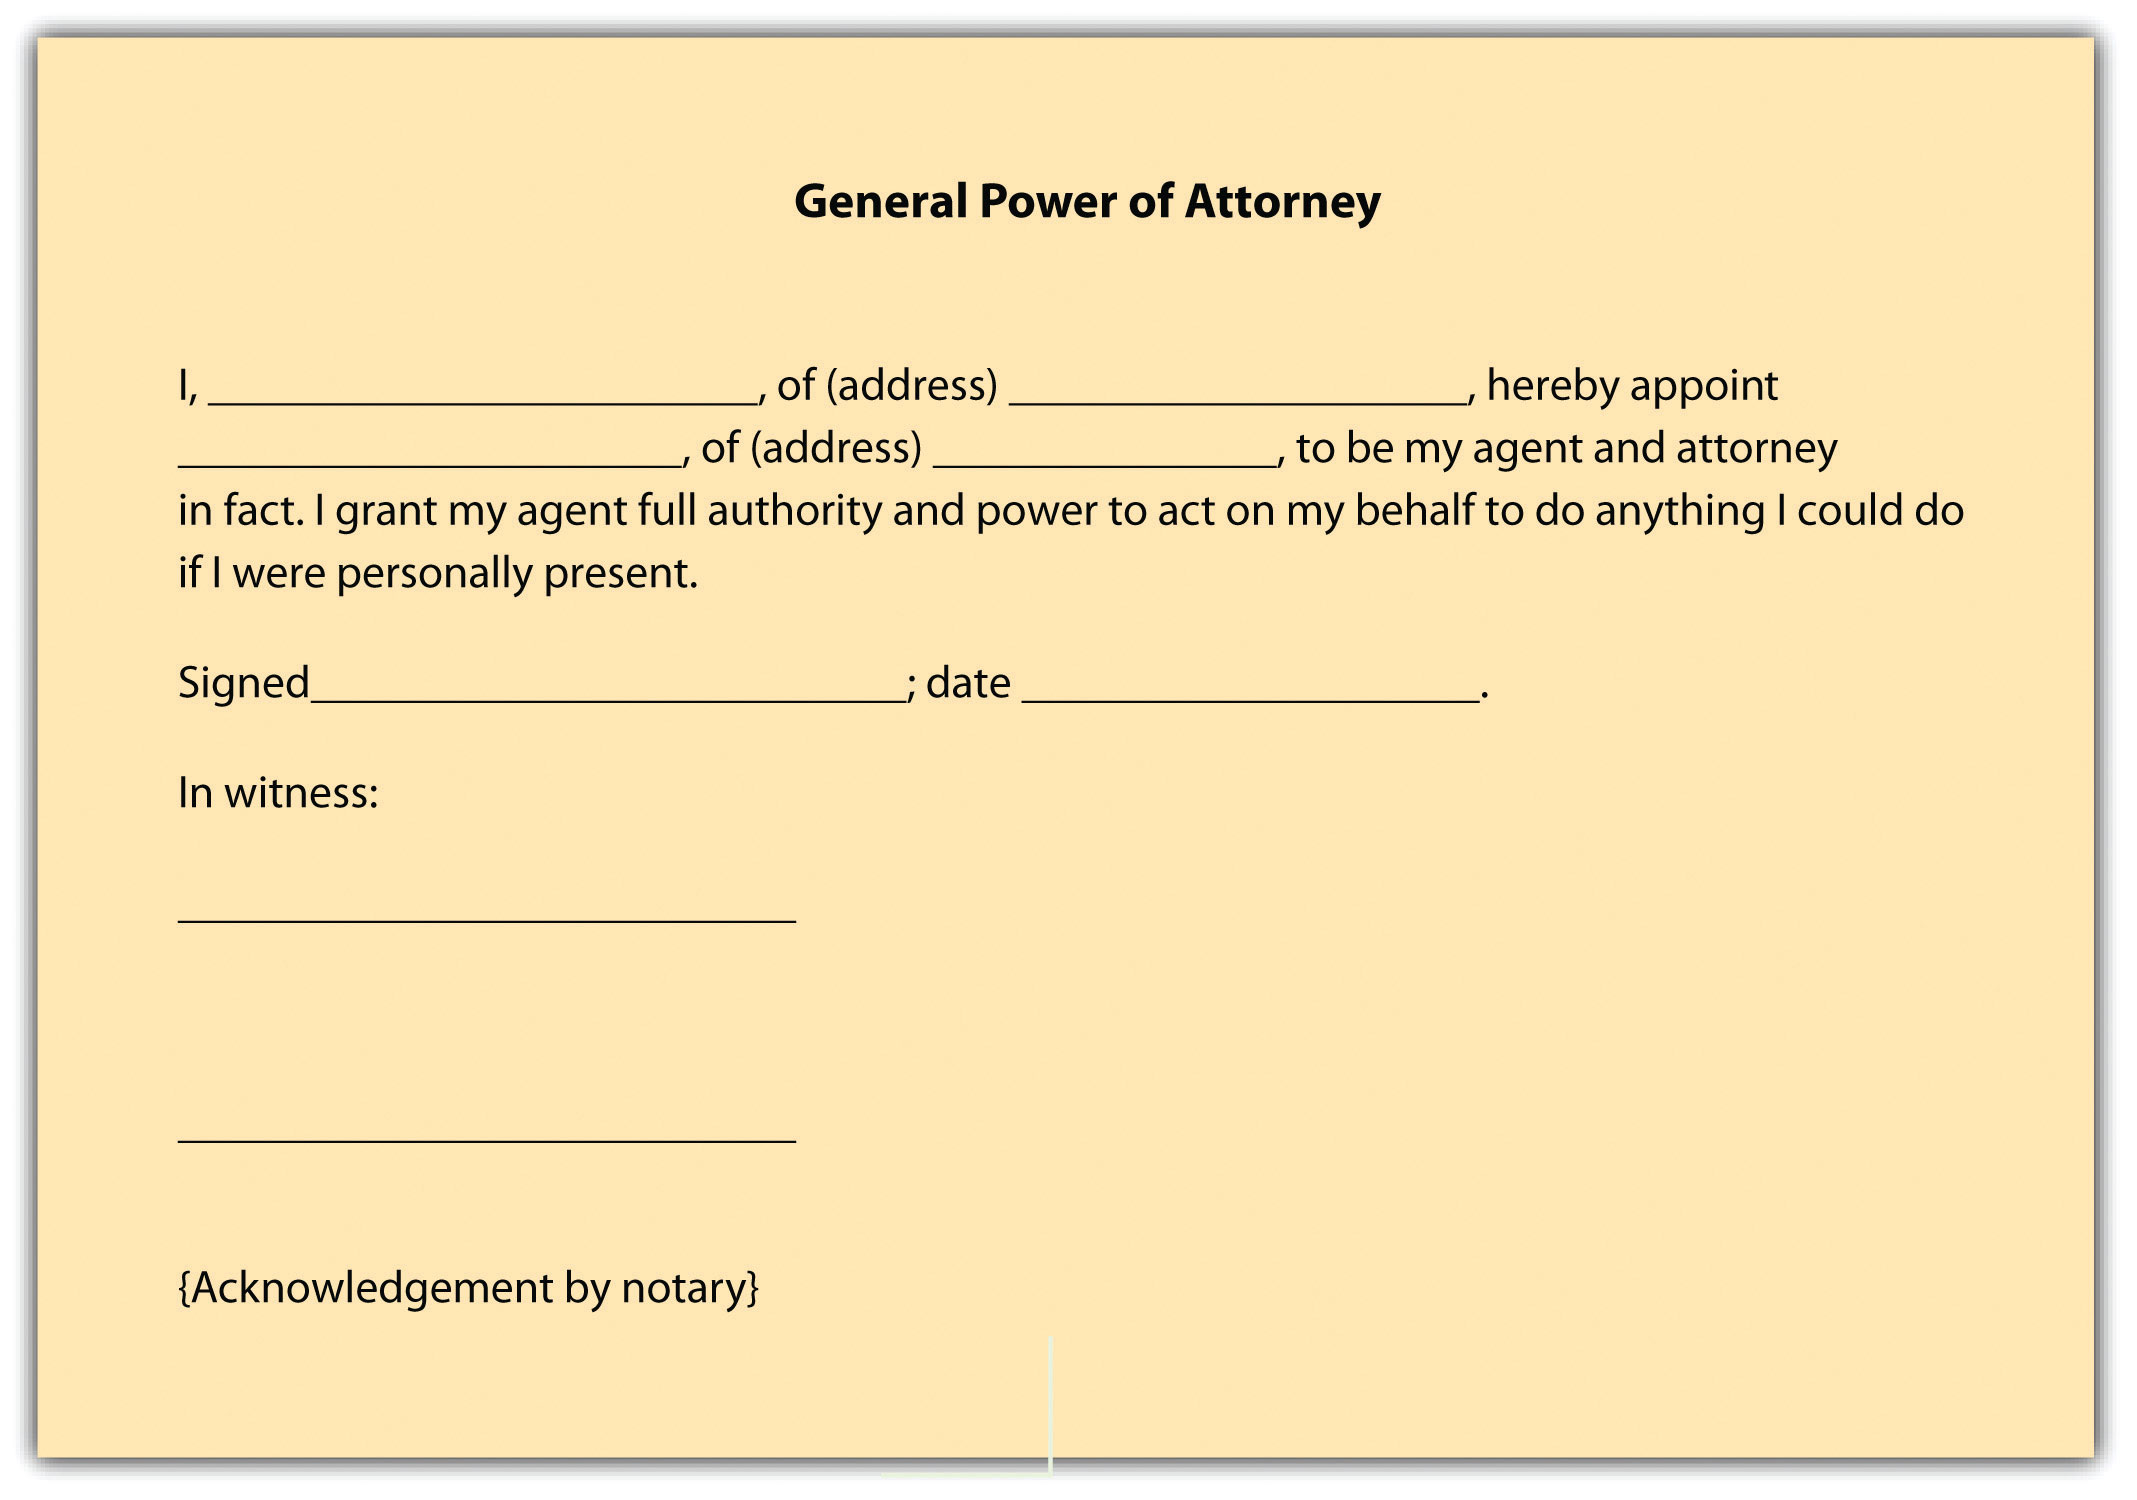 Form new form for power of attorney in alberta for power in form attorney alberta of attorney 2 figure power general 11 of falaconquin